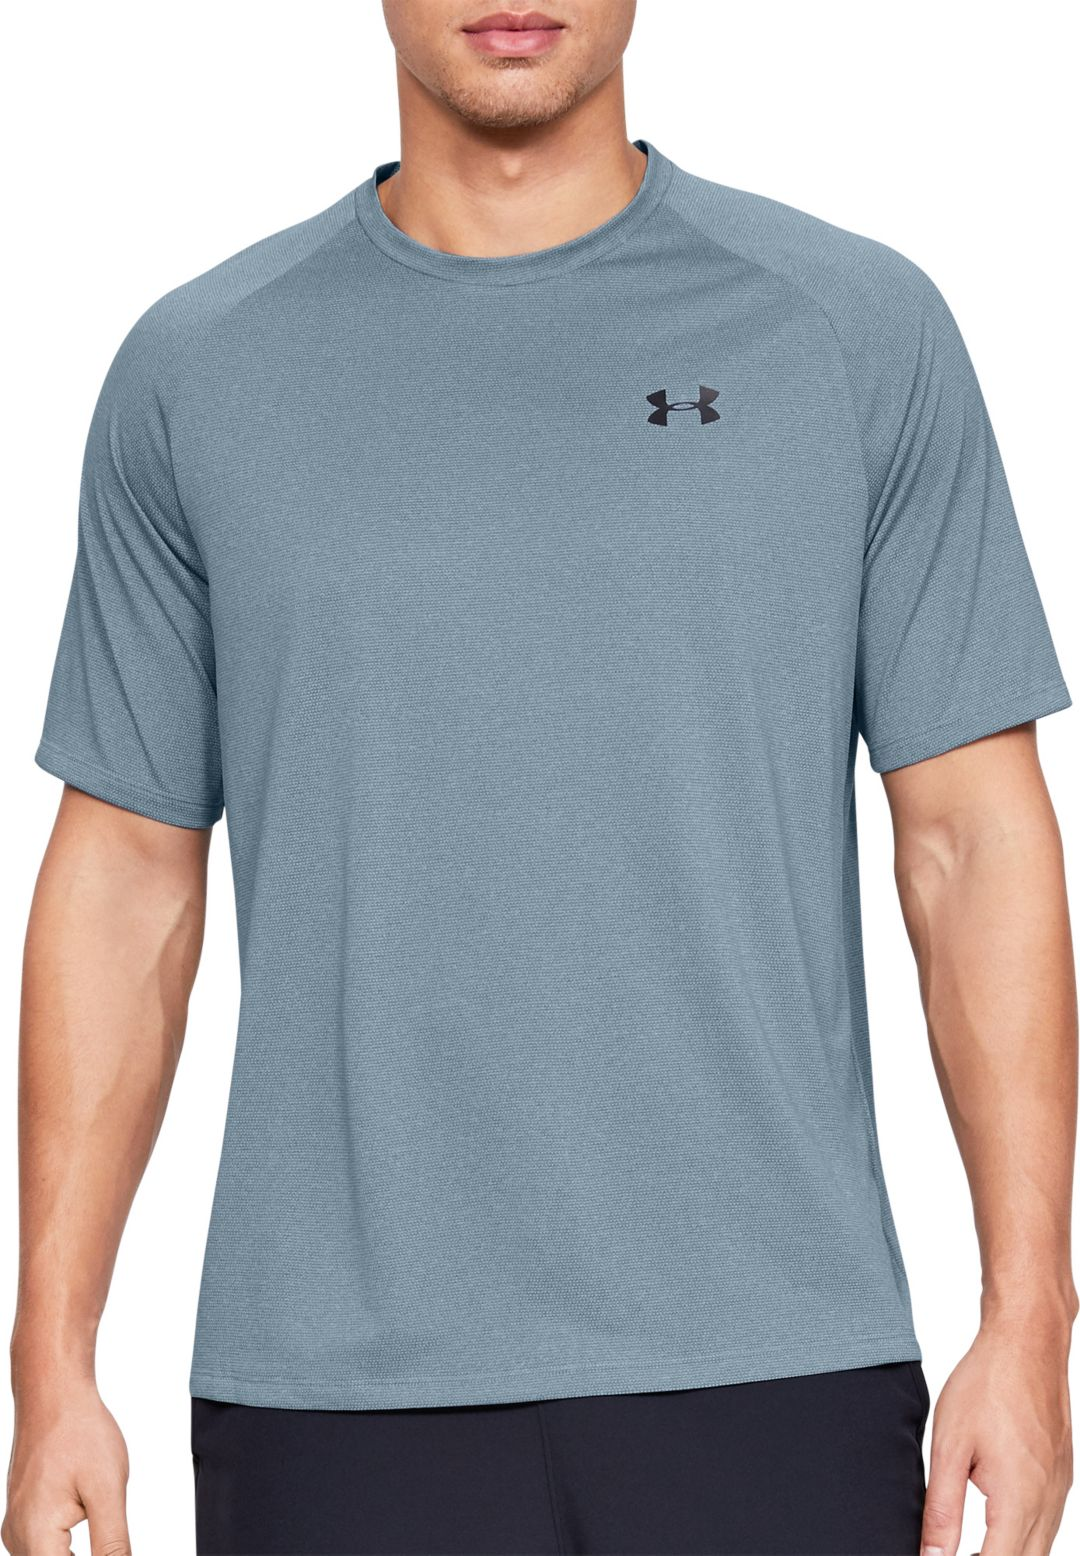 c8e3332964fa2a Under Armour Men's Tech 2.0 Novelty T-Shirt | DICK'S Sporting Goods